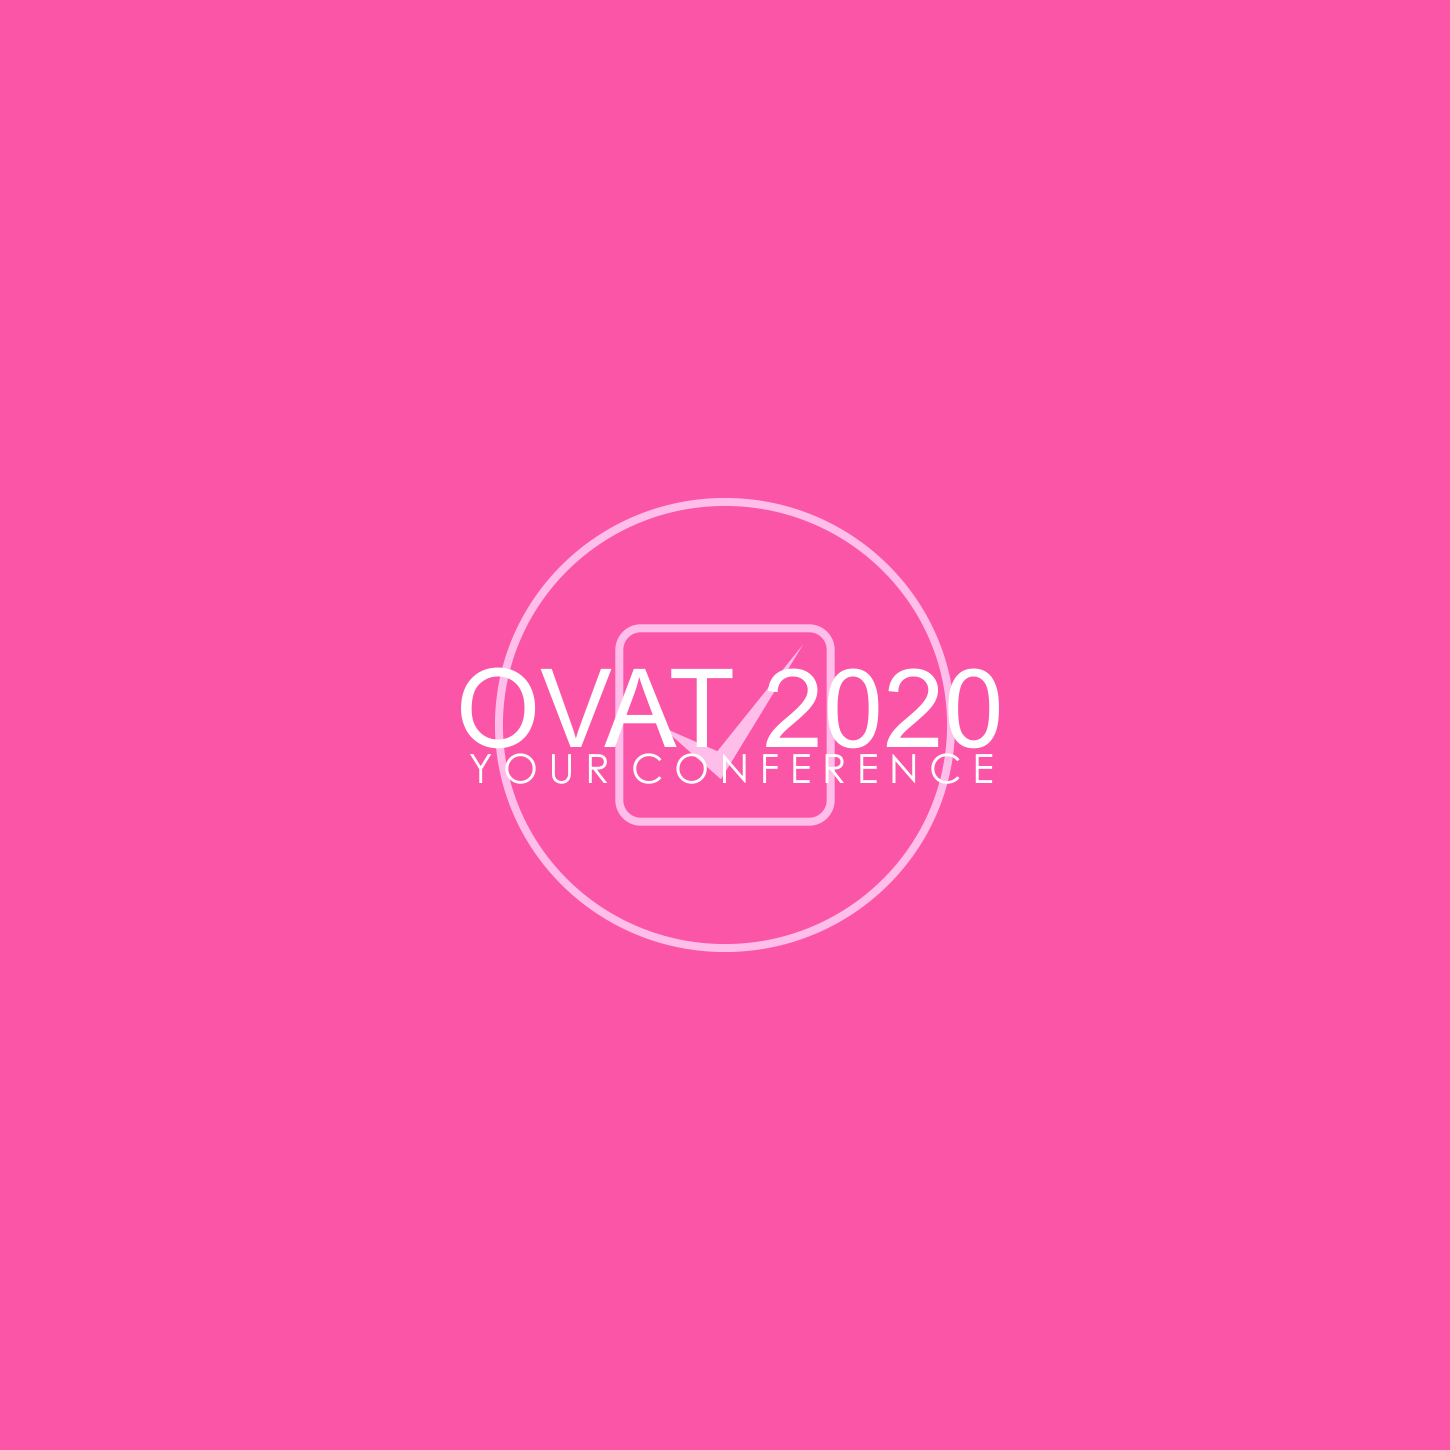 Playful, Professional, Veterinary Logo Design for OAVT 2020 Your